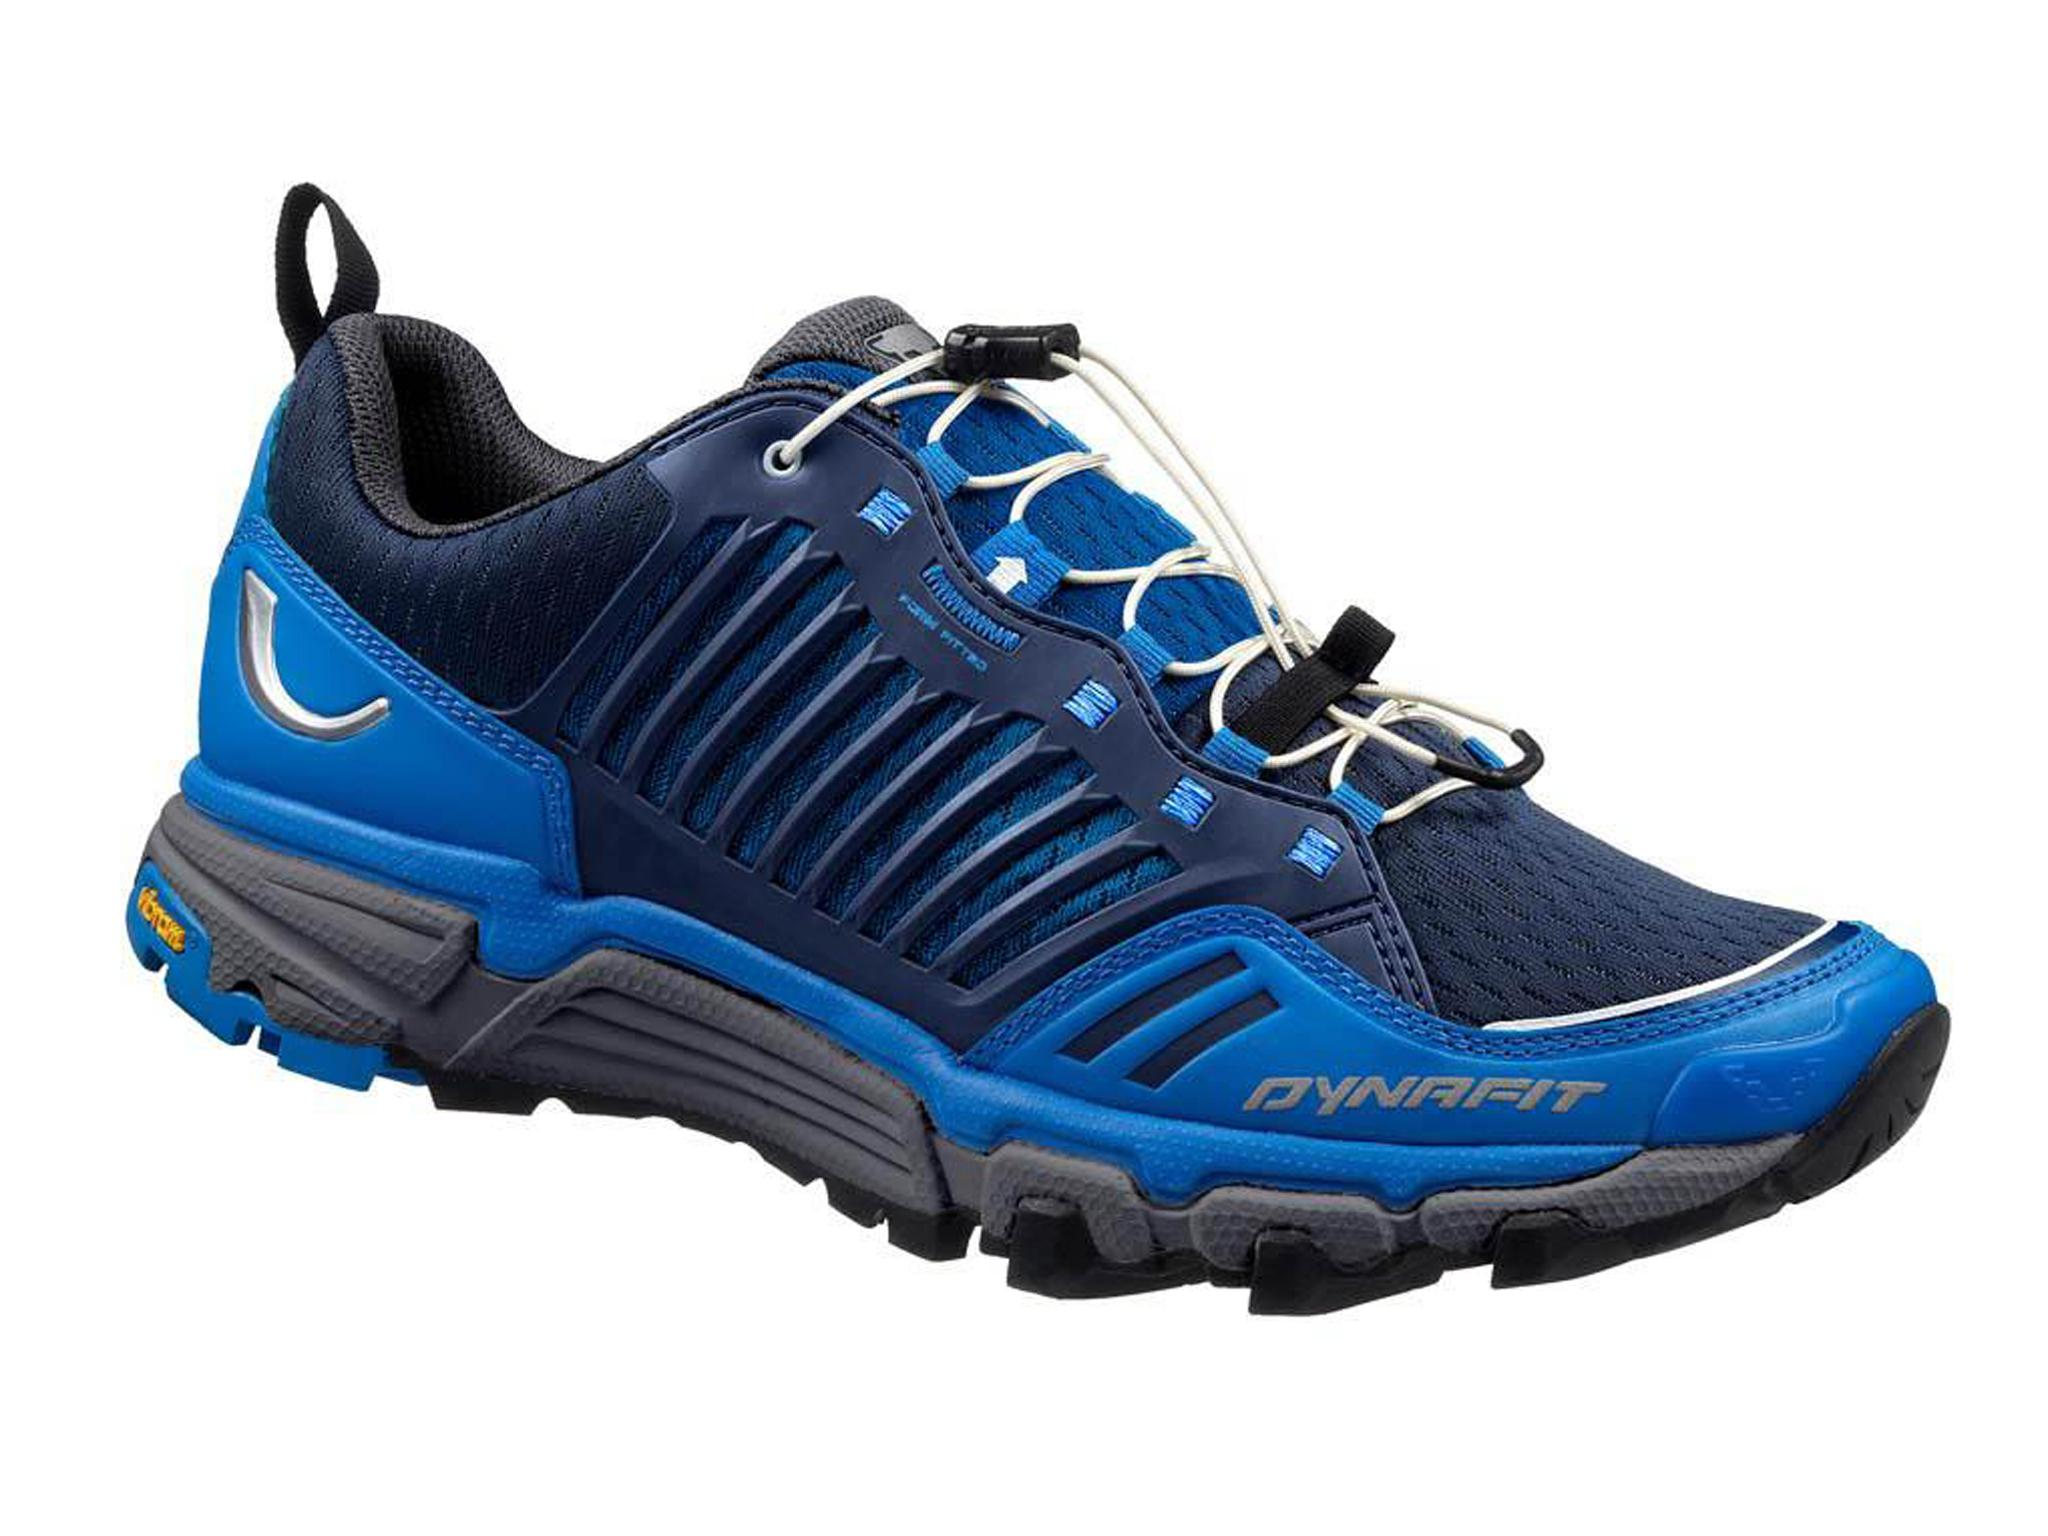 f92b9d6be67 9 best running shoes for ultramarathons | The Independent